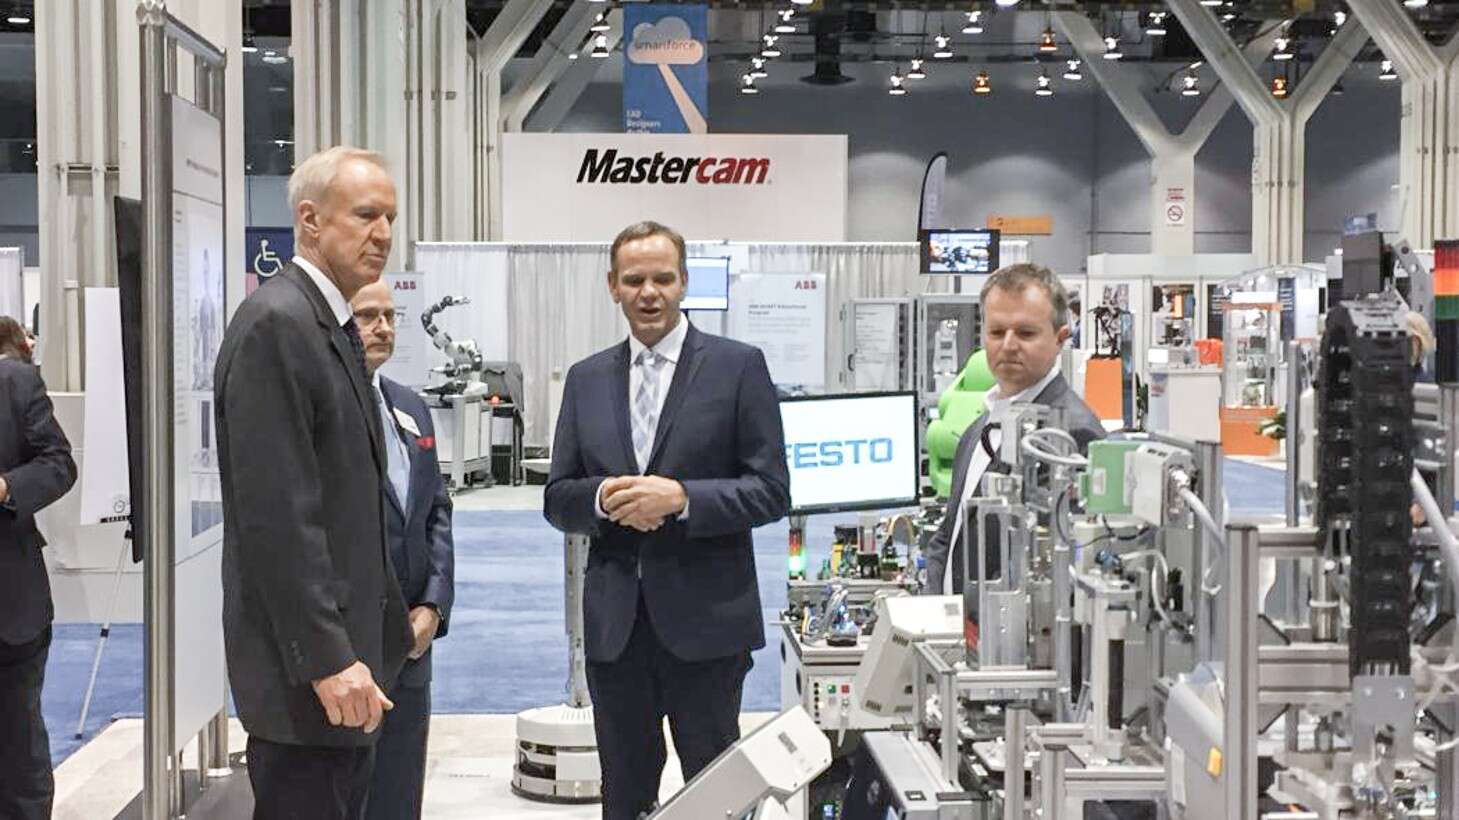 Equipment that simulates Industry 4.0 technology